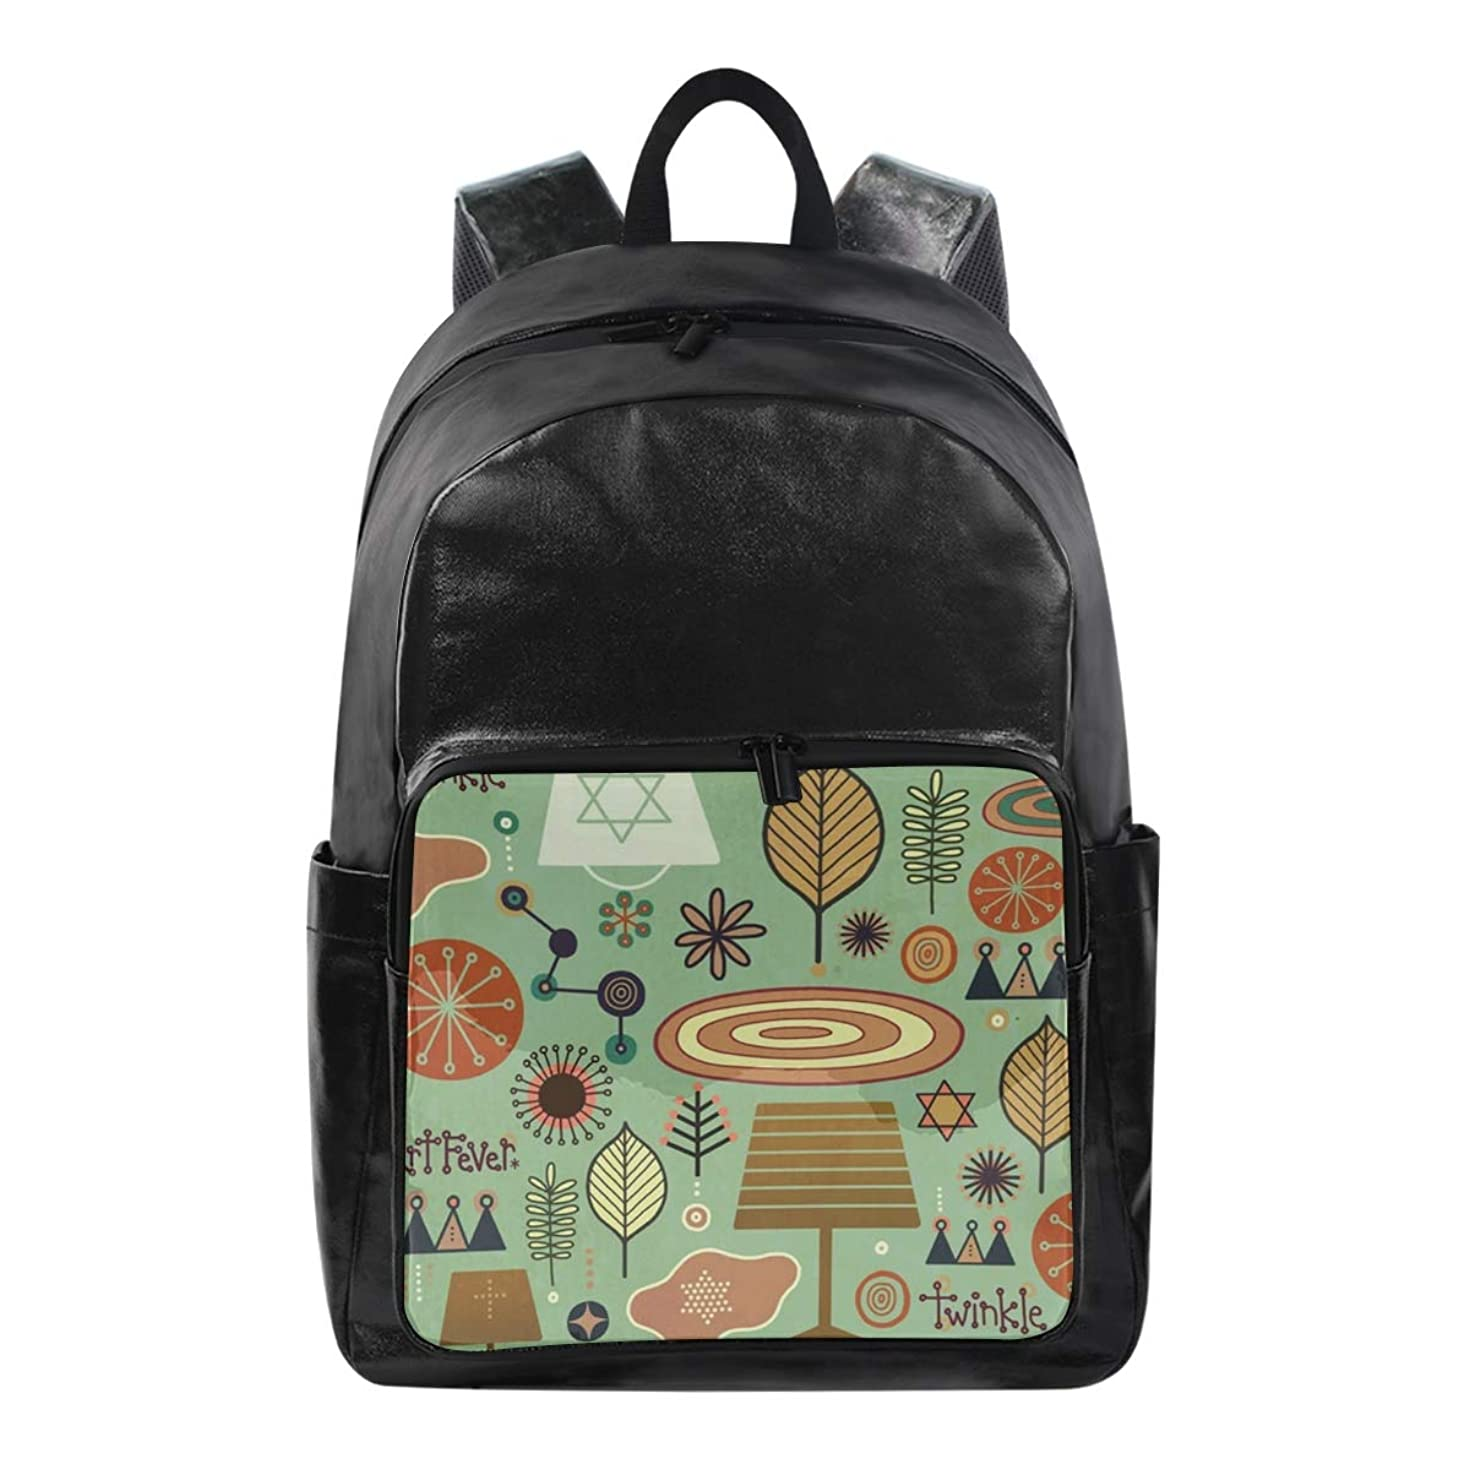 Student Backpacks College School Book Bag Travel Hiking Camping Daypack for boy for Girl | 12.5